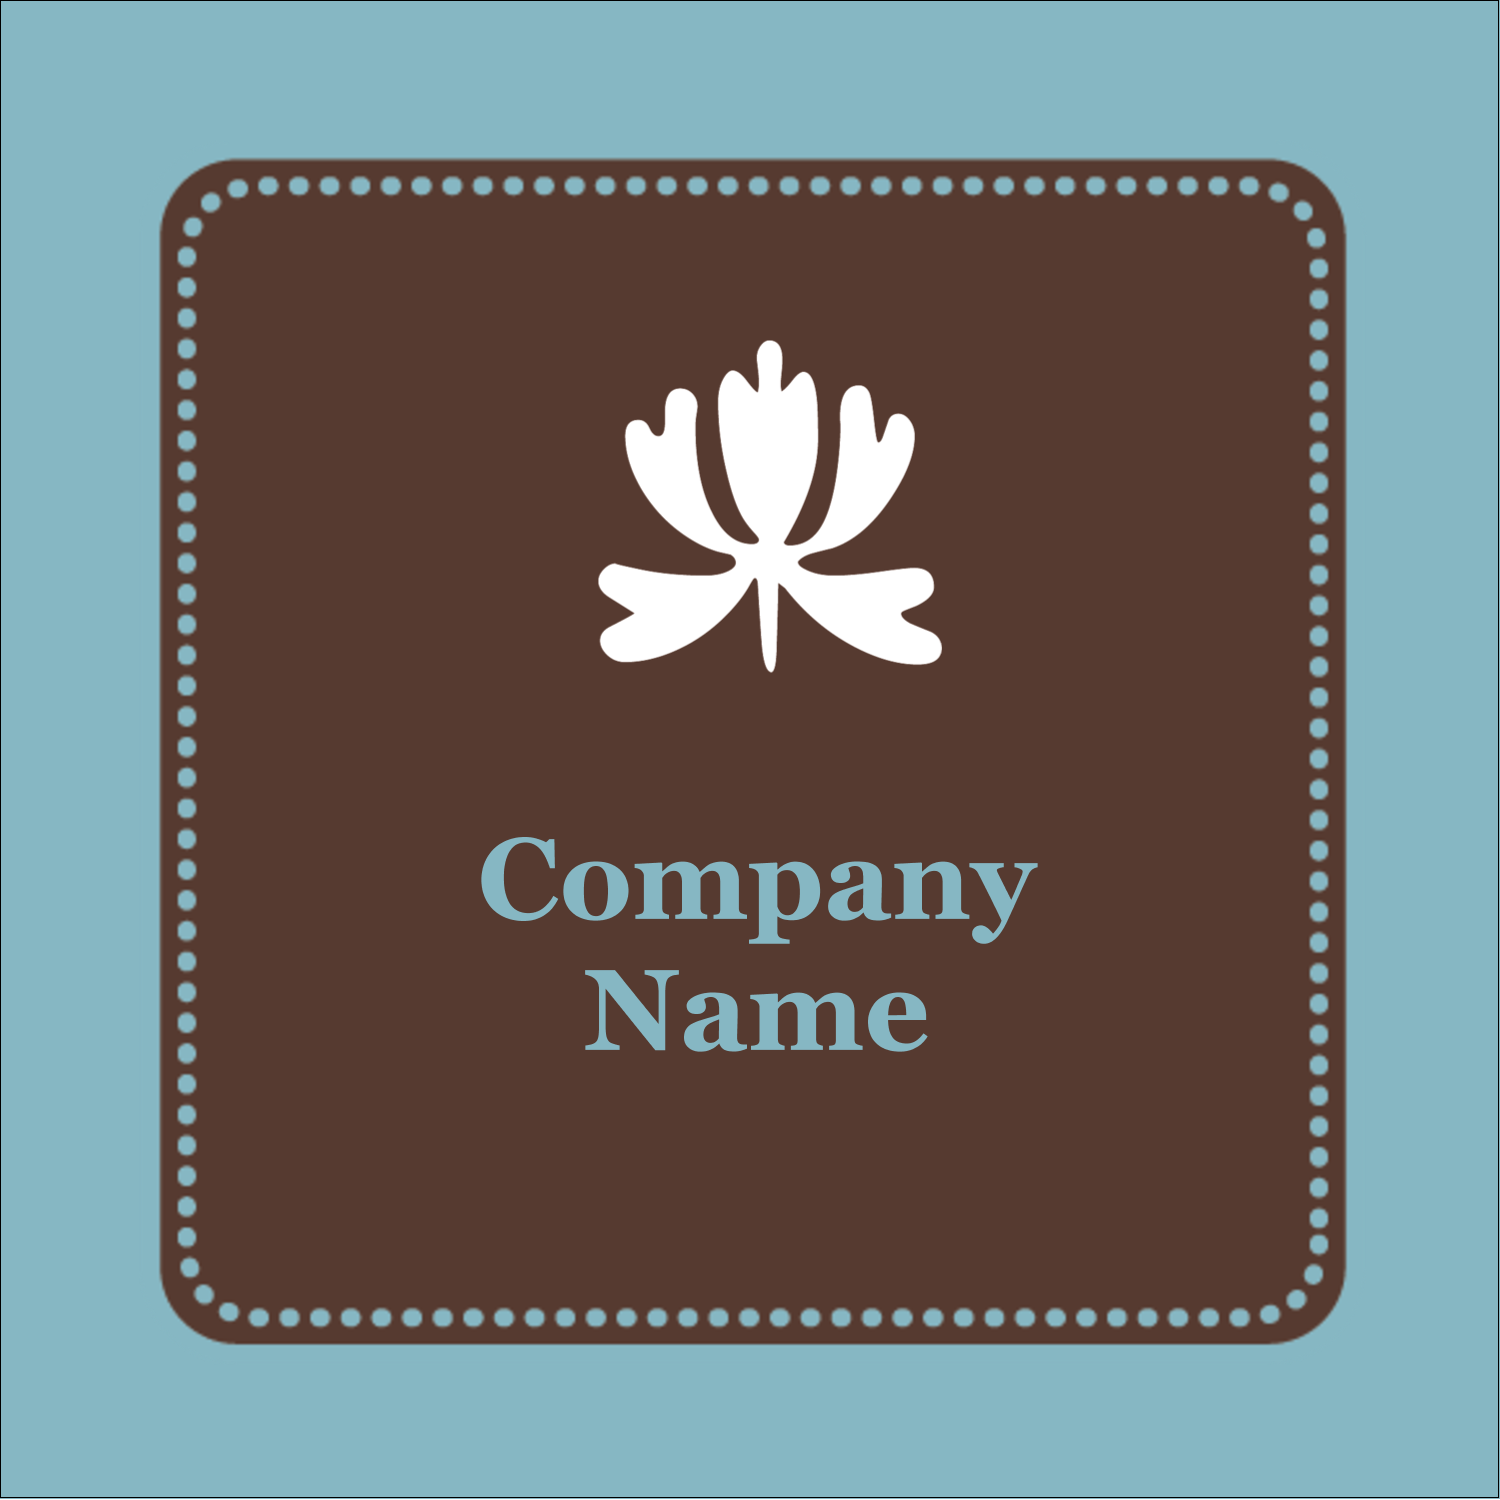 "2"" x 2"" Square Label - Blue Brown Border"